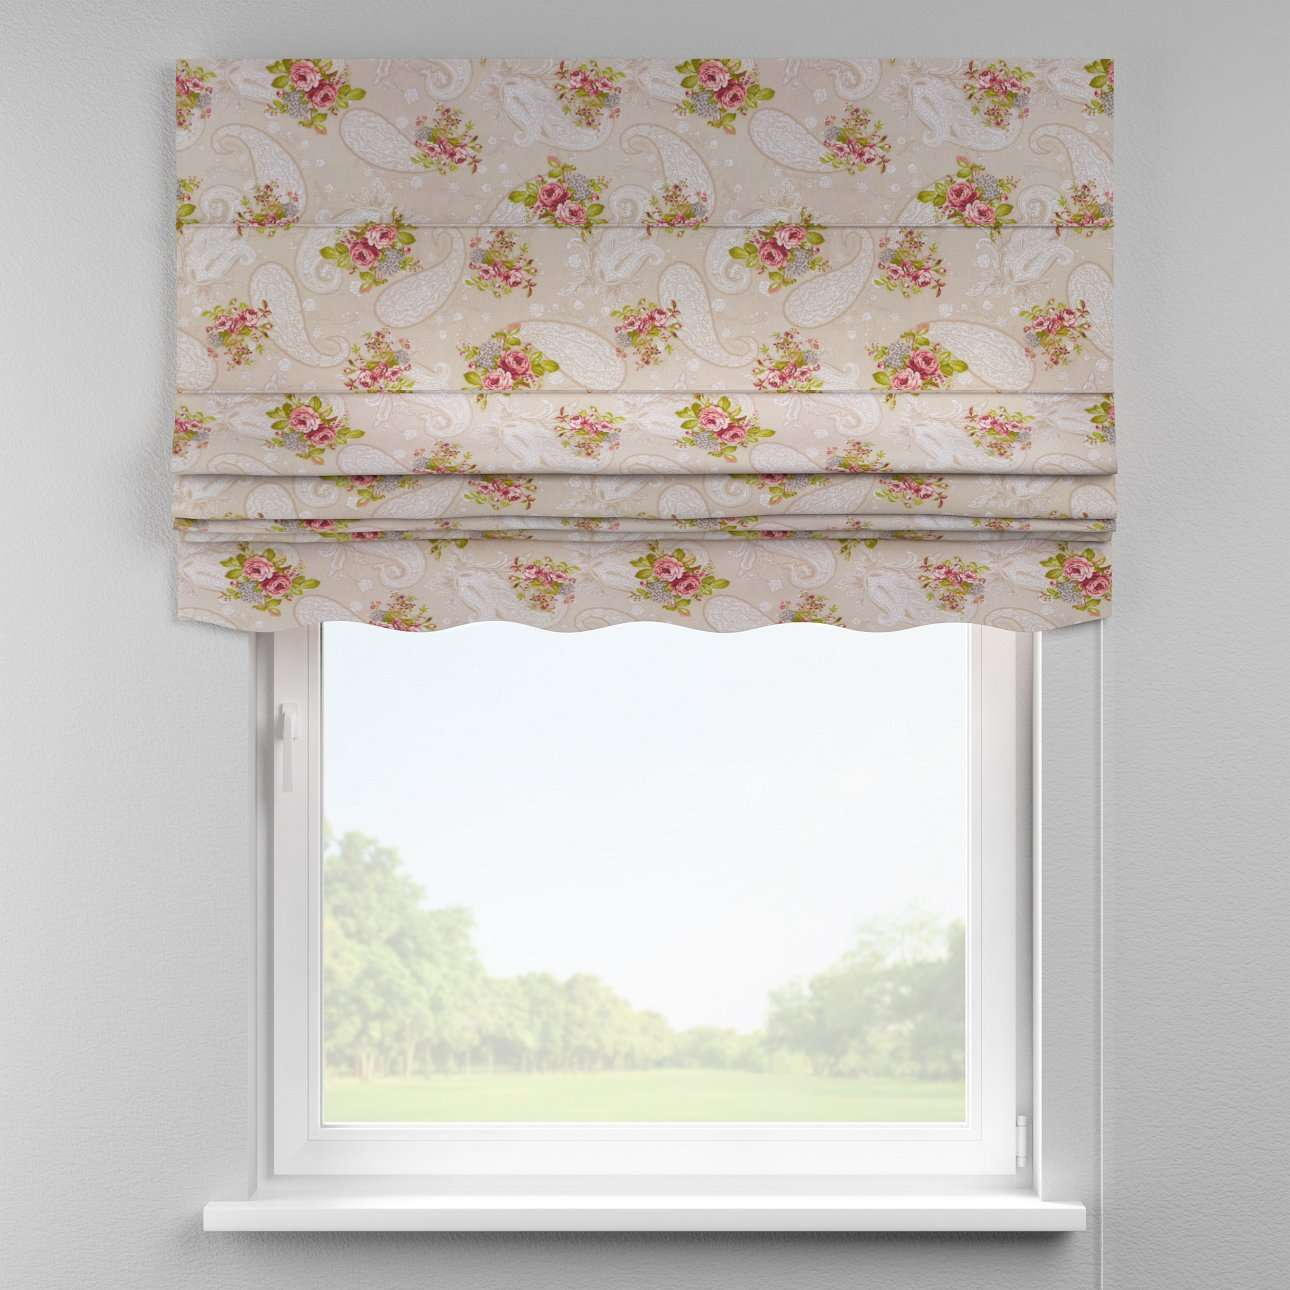 Florence roman blind  80 x 170 cm (31.5 x 67 inch) in collection Flowers, fabric: 311-15